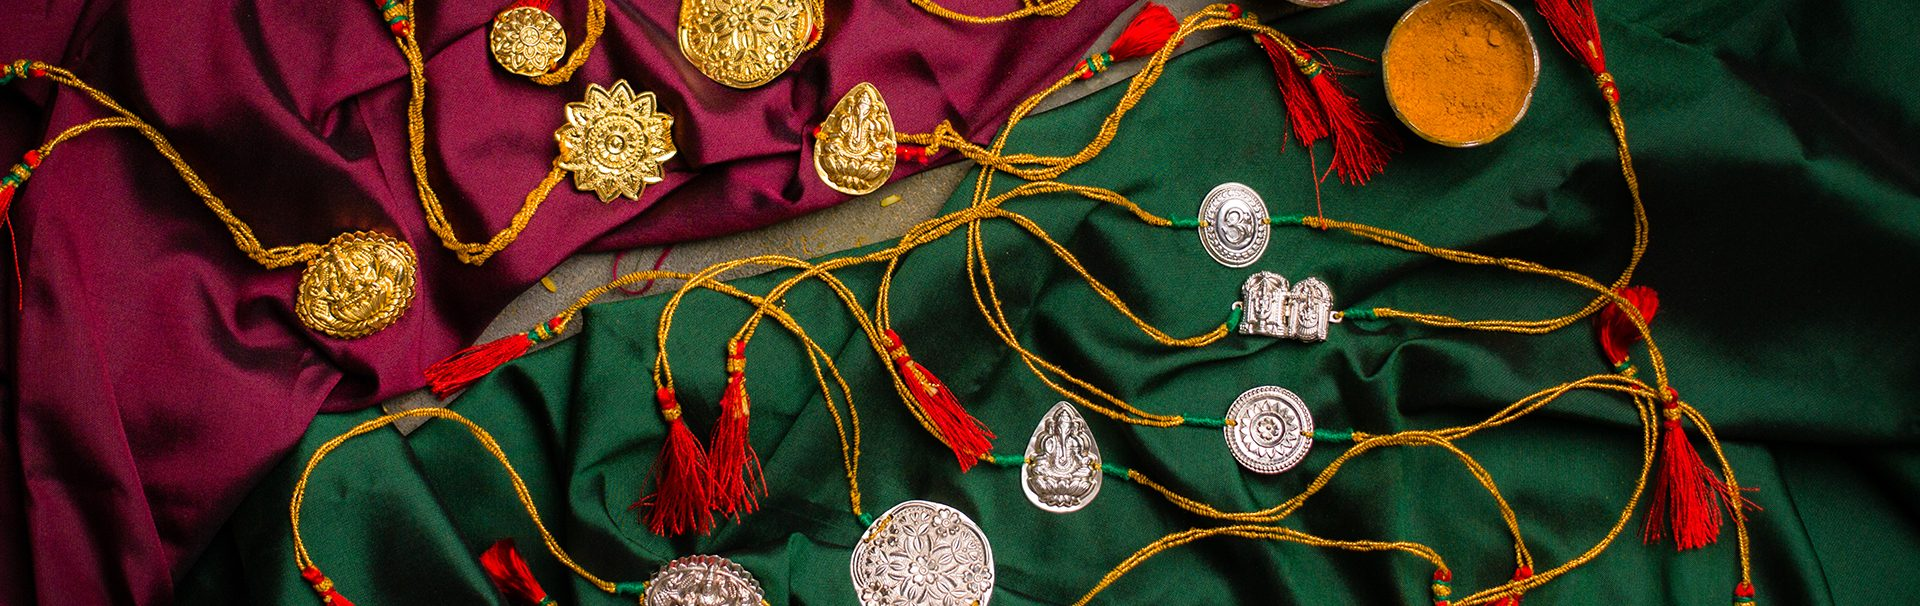 Silver and Gold coated silver rakhi's